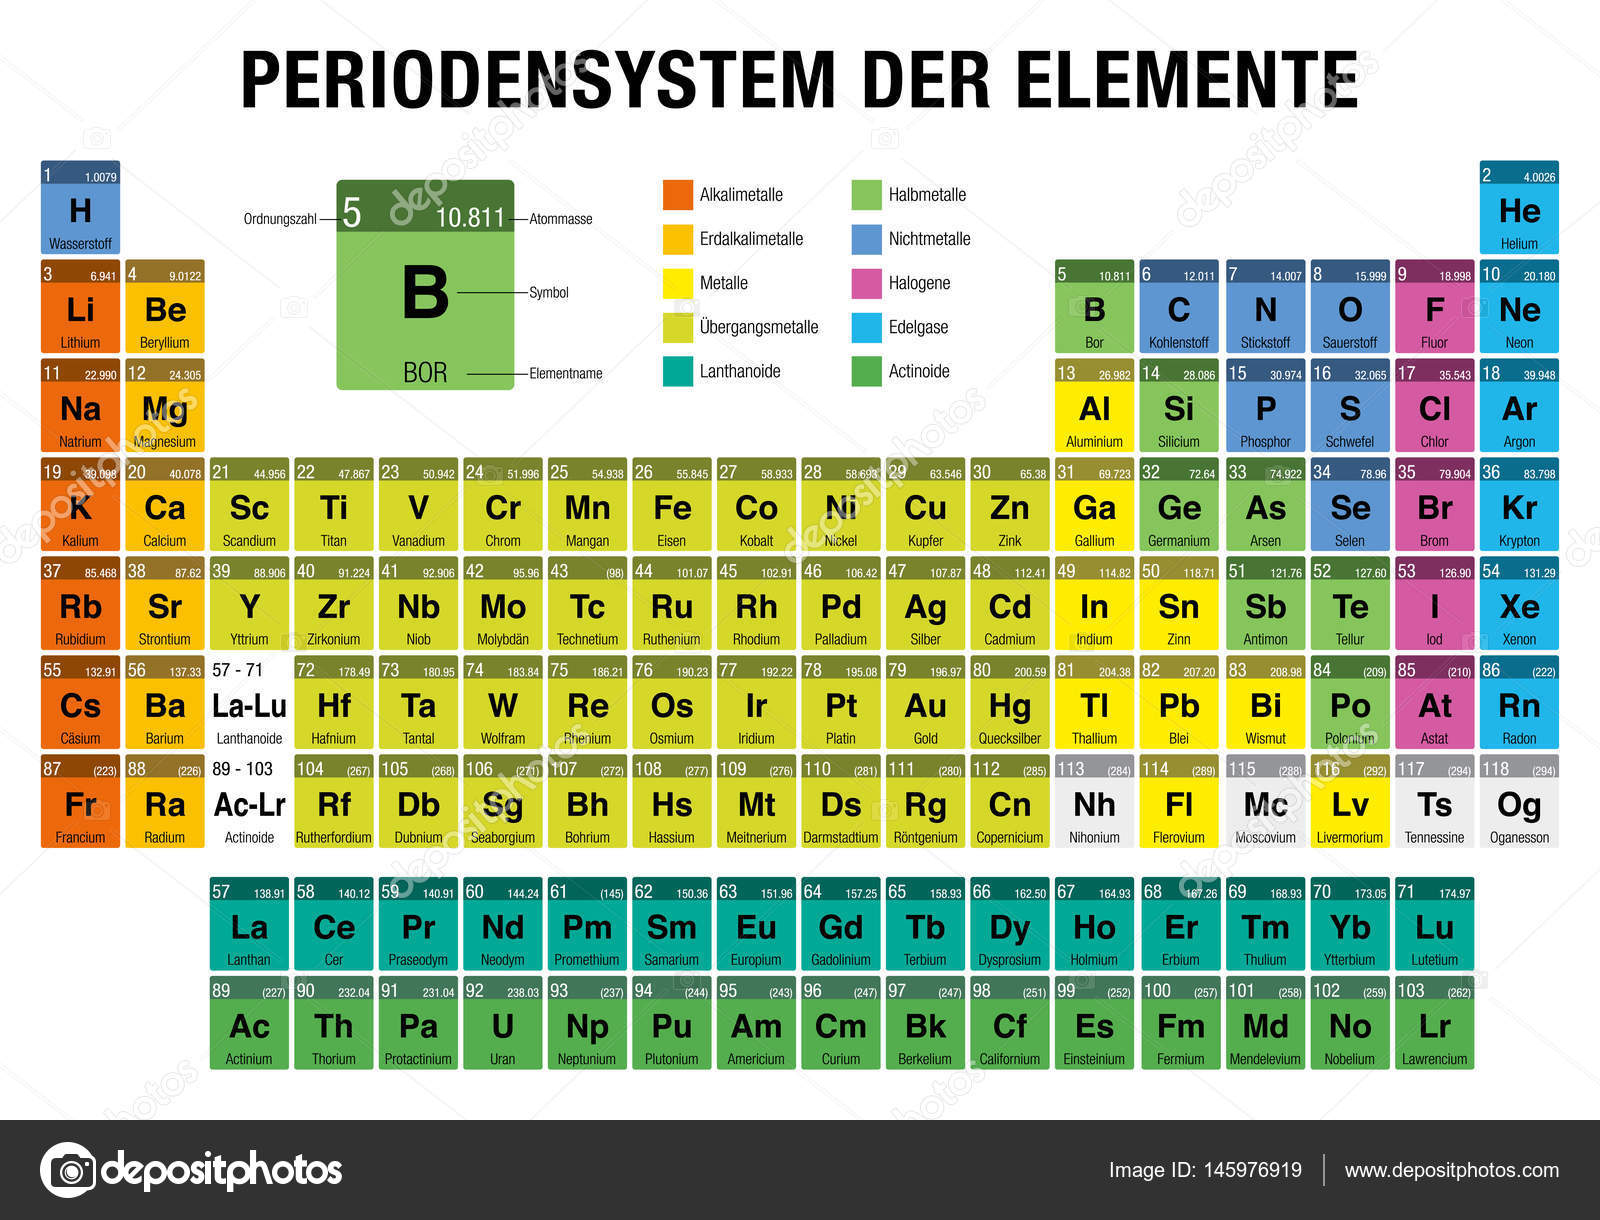 Periodensystem der elemente periodic table of elements in german periodensystem der elemente periodic table of elements in german language on white background with urtaz Image collections